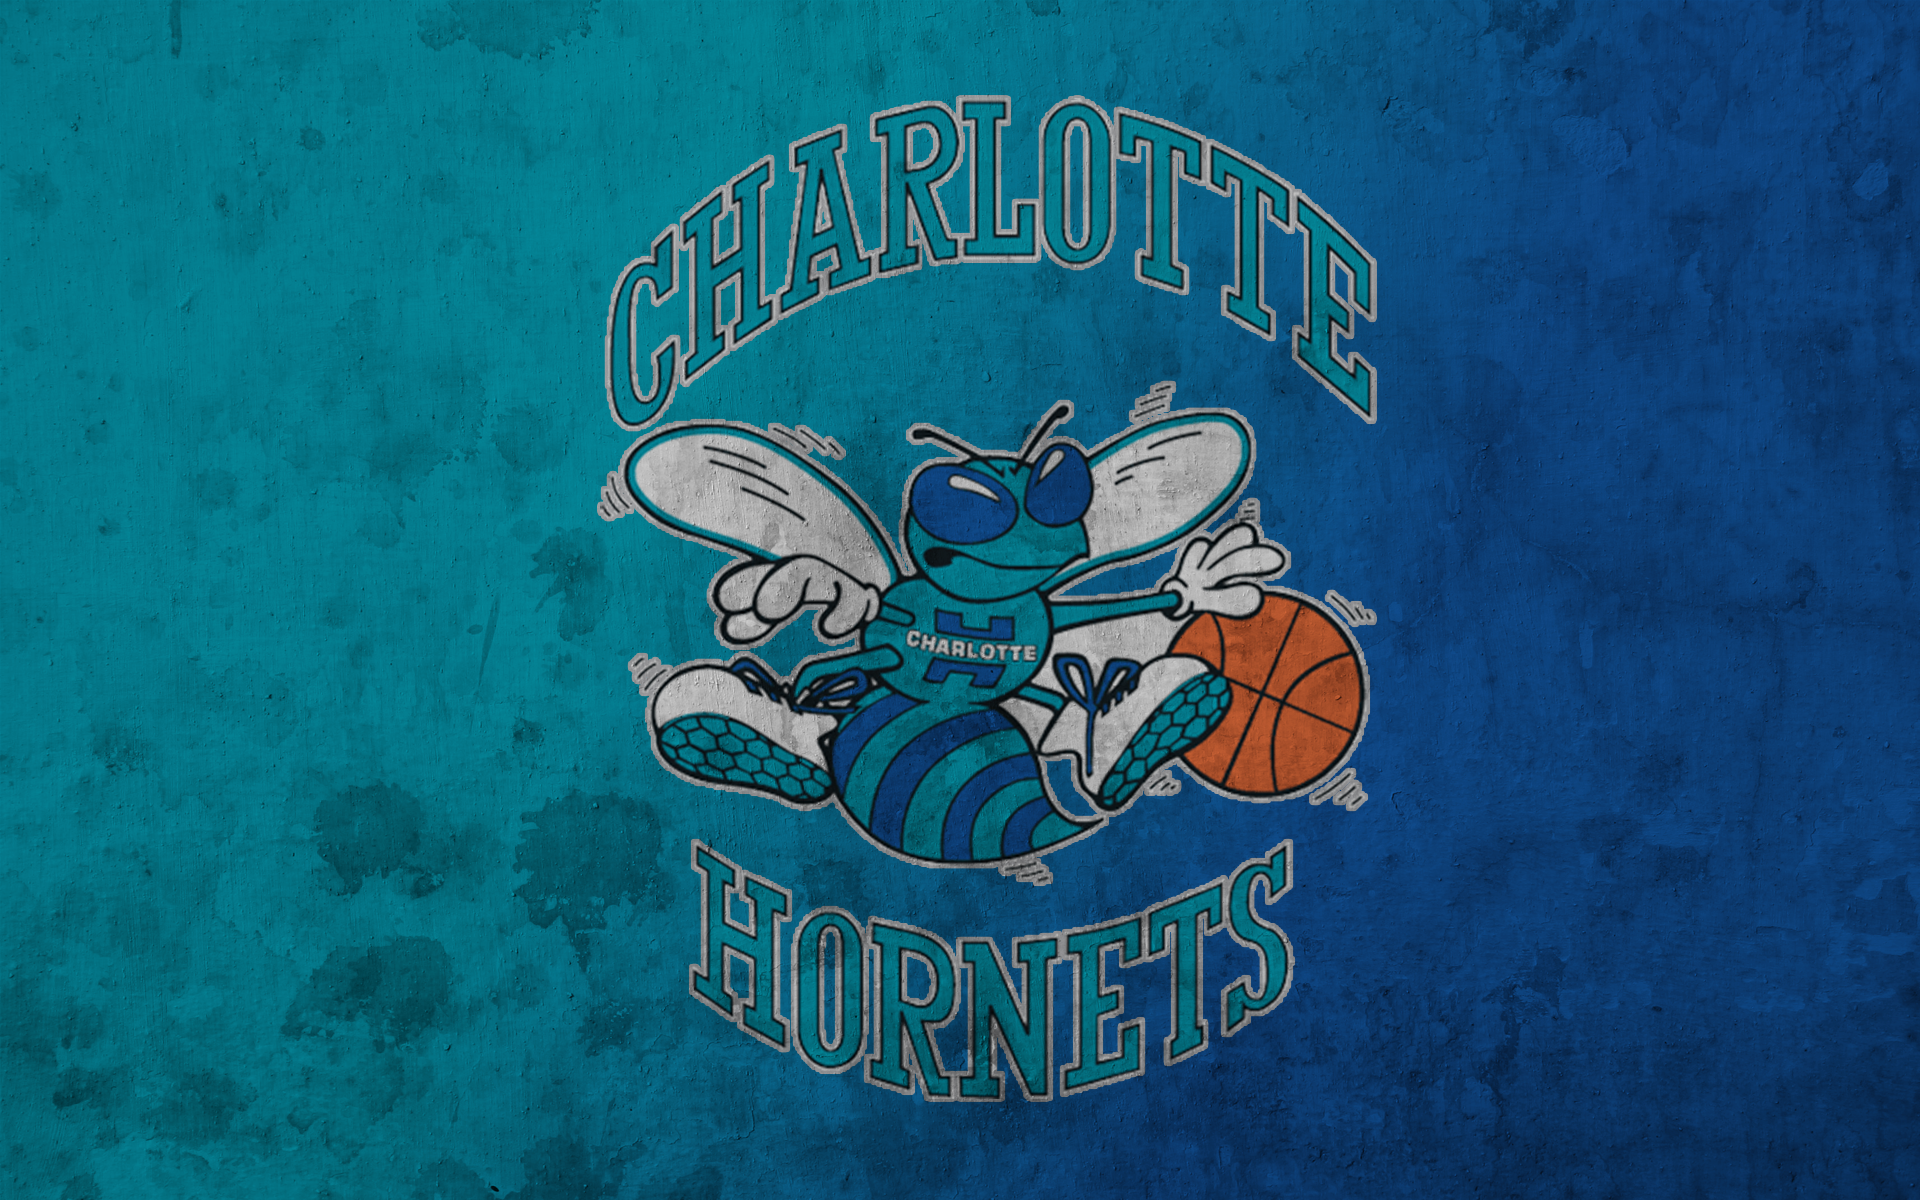 Charlotte Hornets Wallpaper 99 images in Collection Page 2 1920x1200